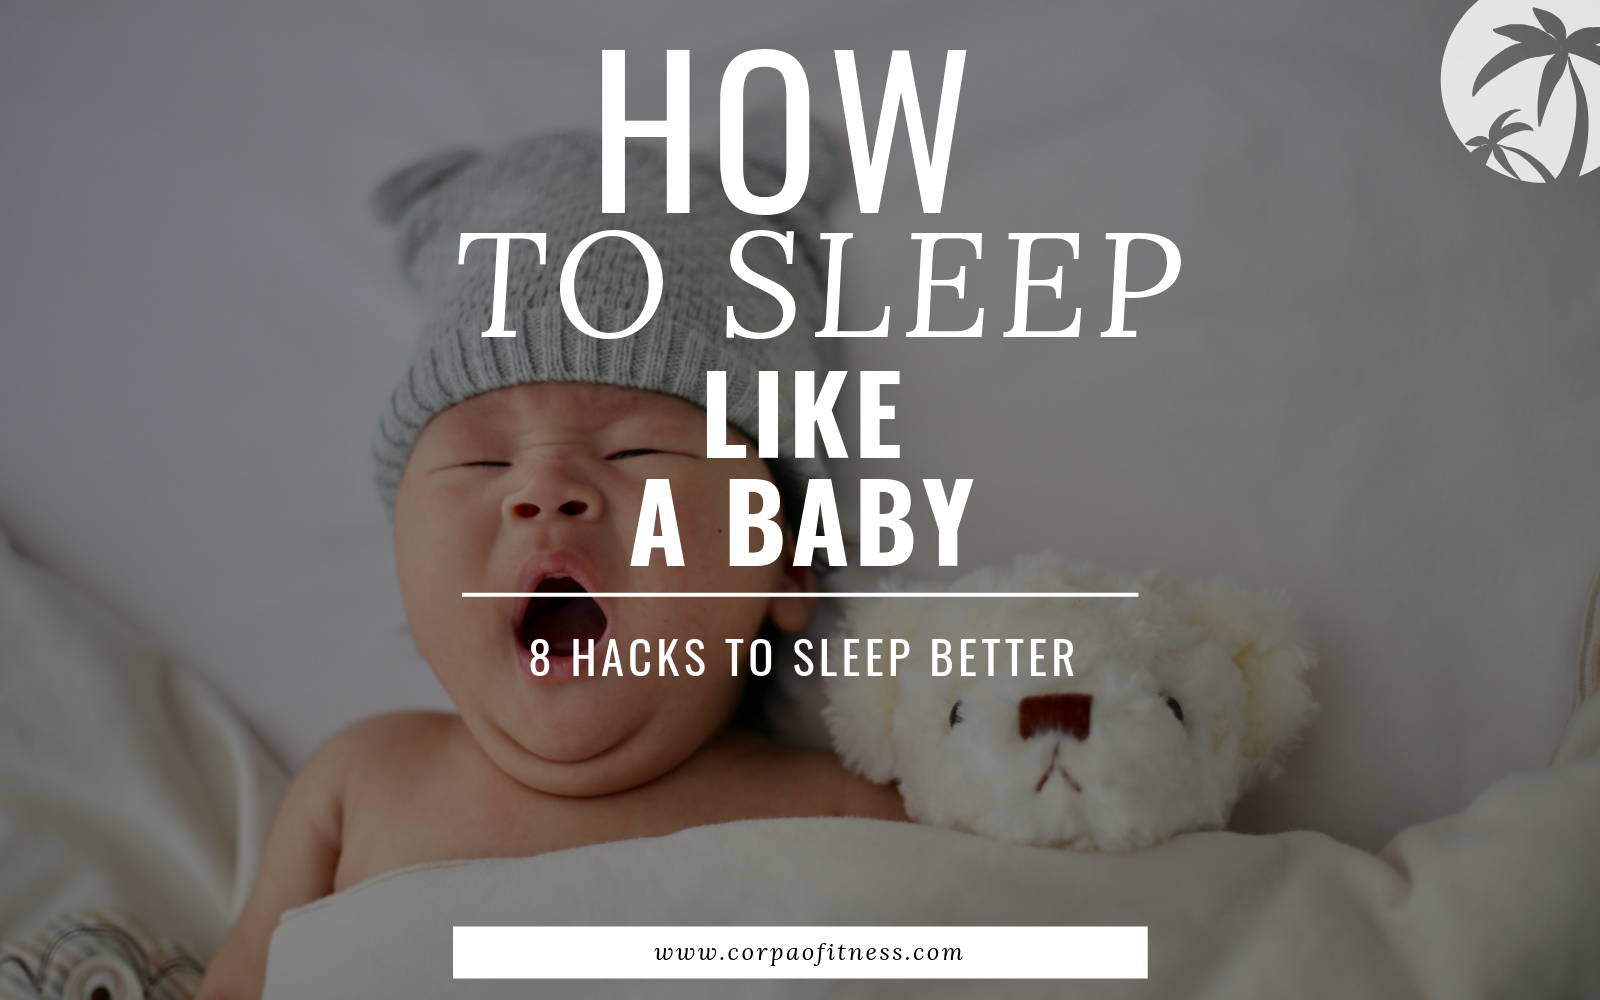 How to sleep like a baby | sleep better